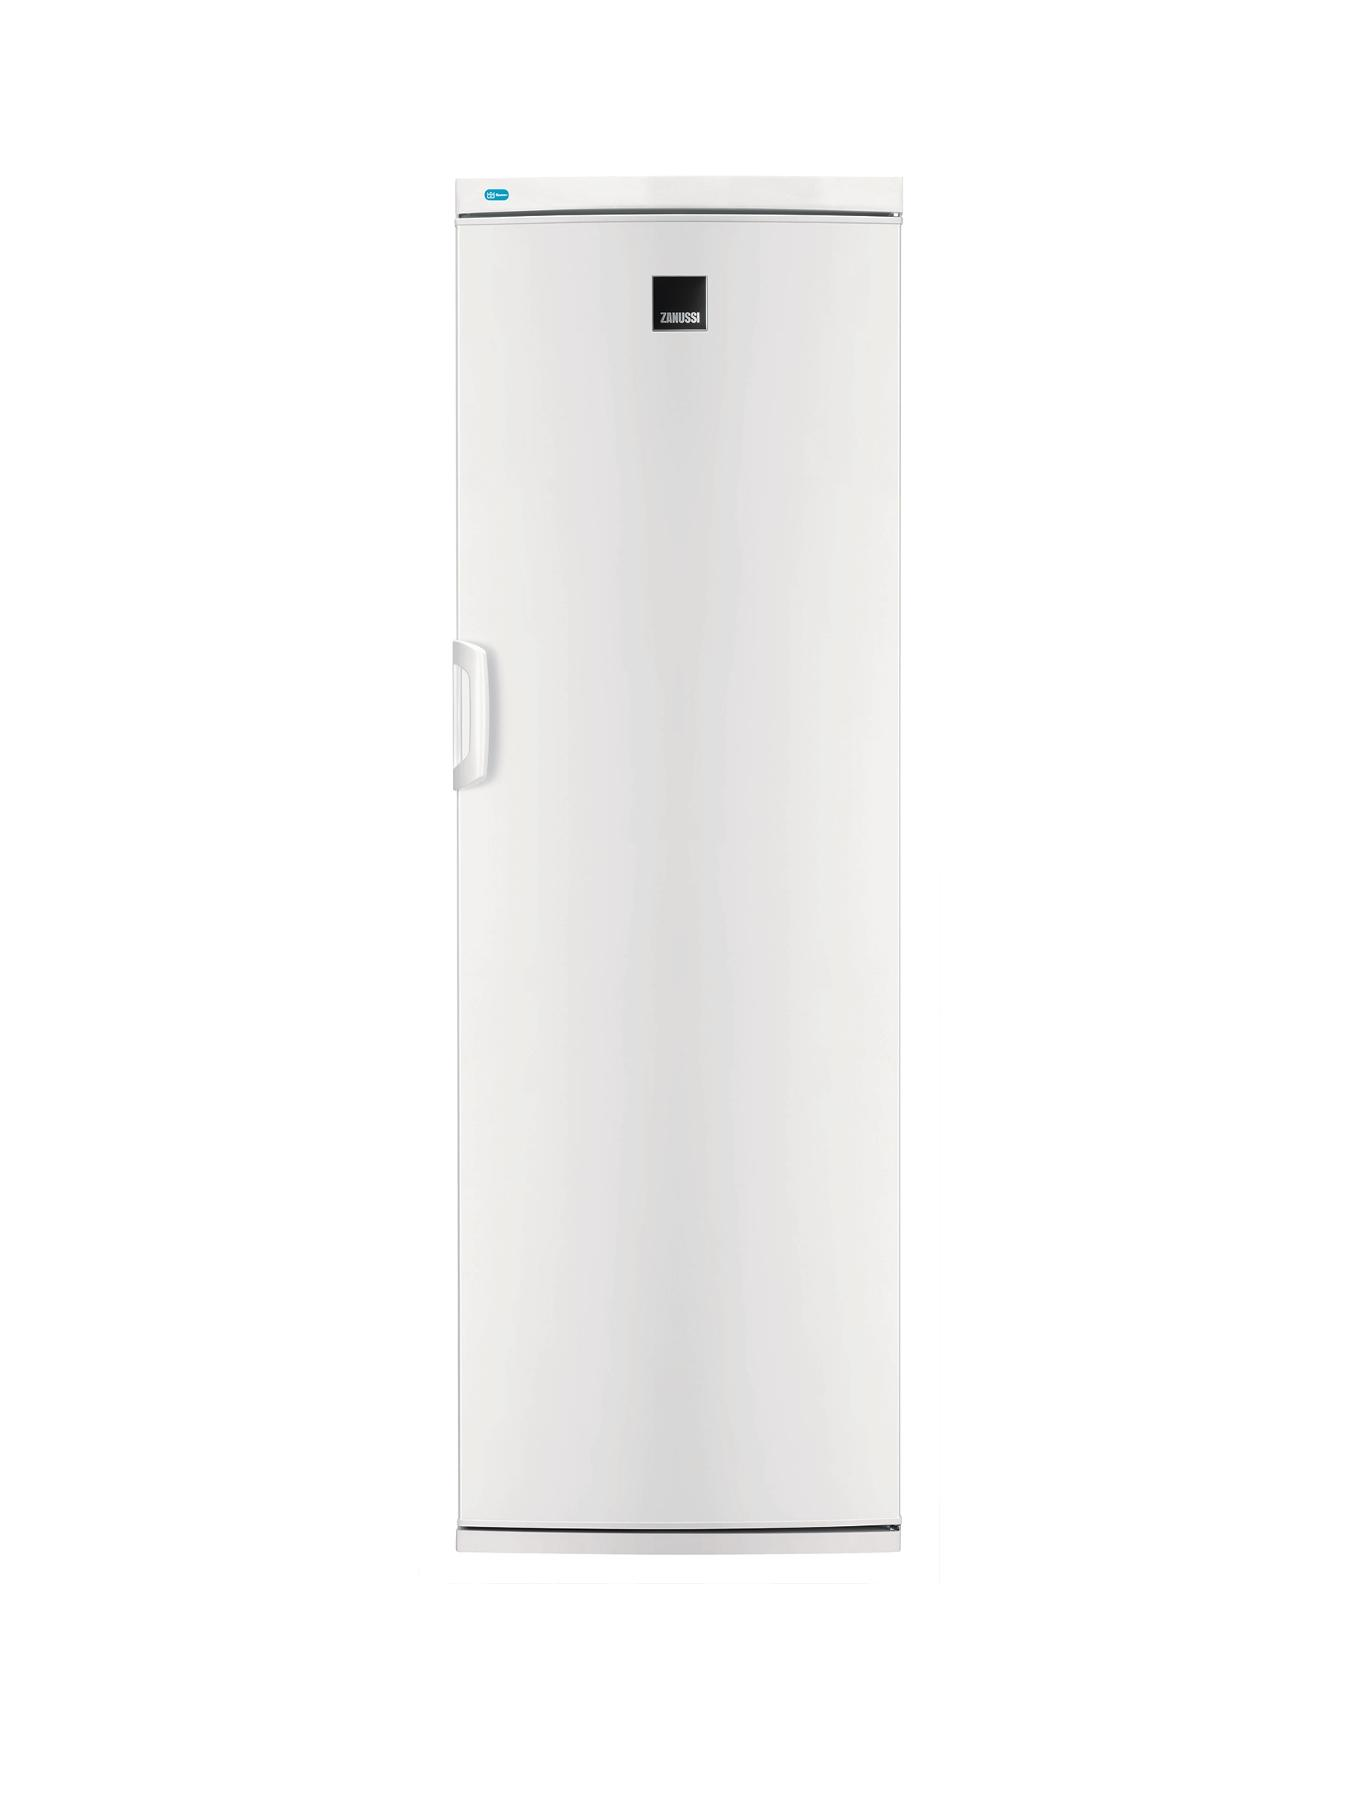 ZRA40100WA 185cm Tall Fridge